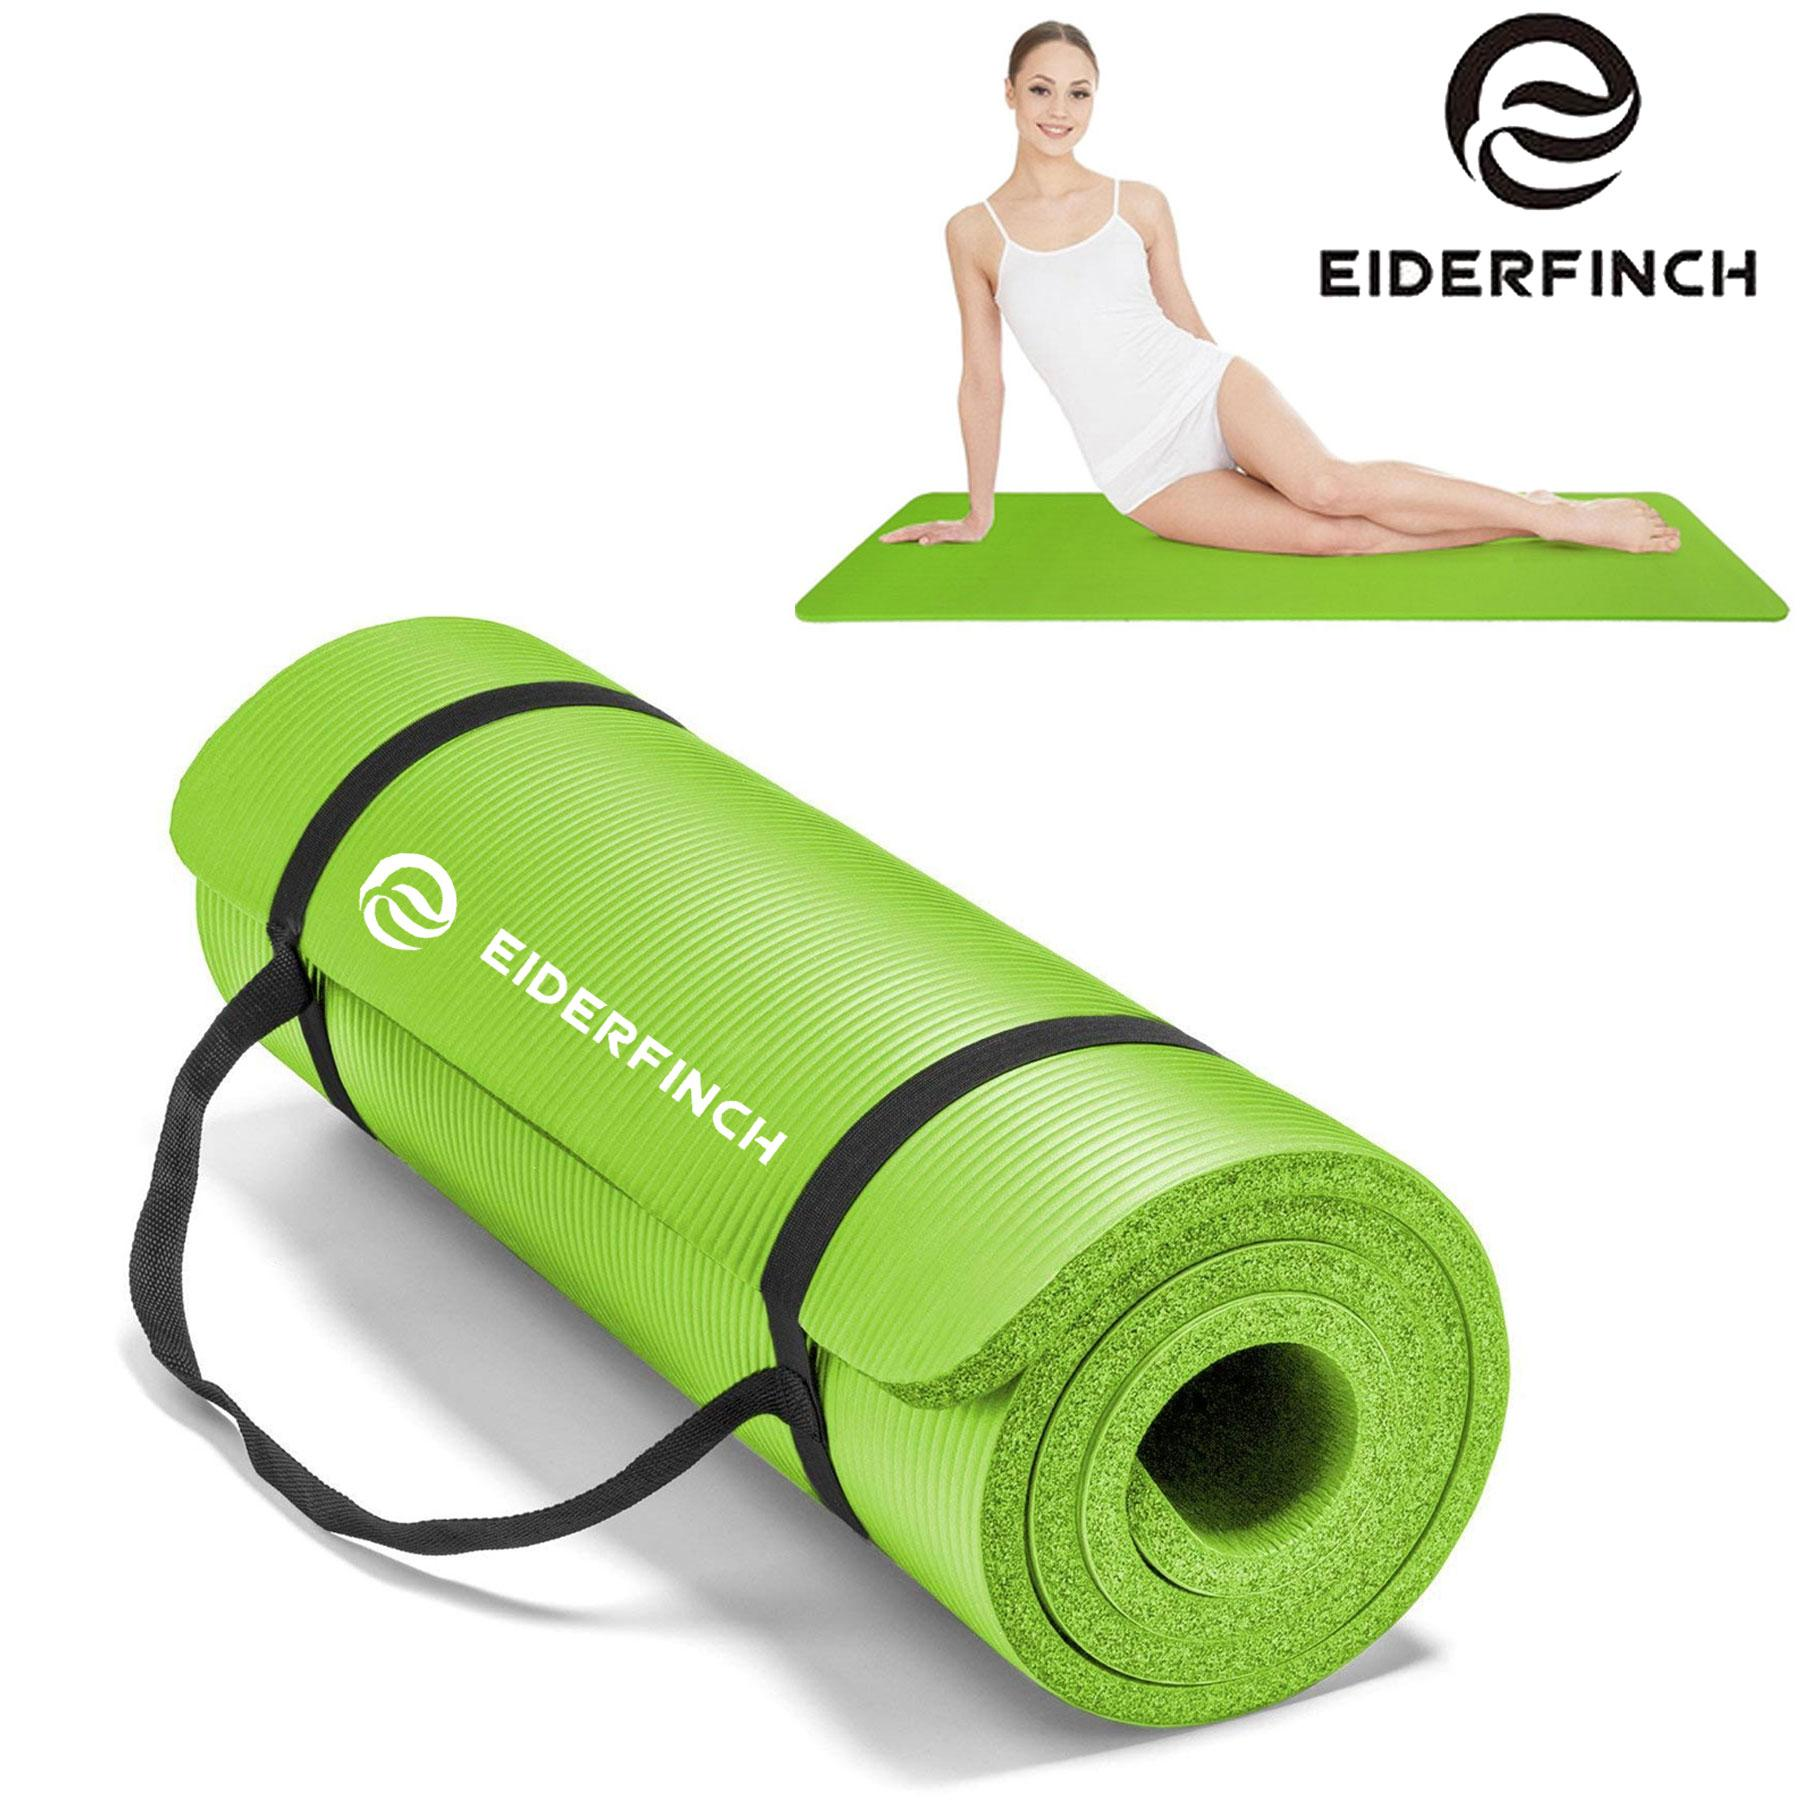 Eiderfinch Extra Thick Yoga Exercise Mat With Carrying Strap